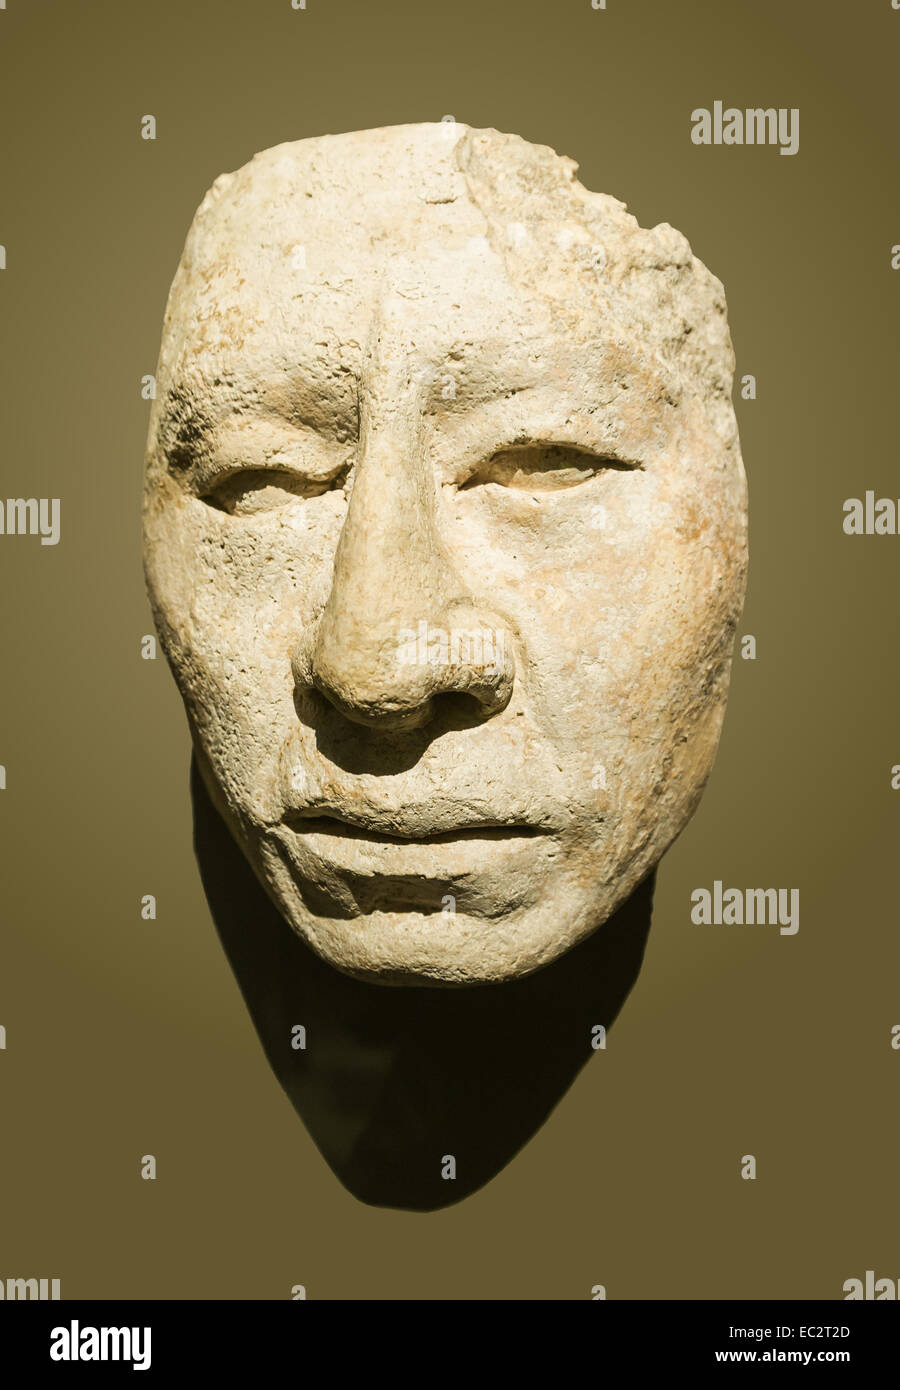 Sculpture of a maya face. Stucco. Classic-recent era (600 - 900 C.E.). Found in Palenque. From the National Museum - Stock Image